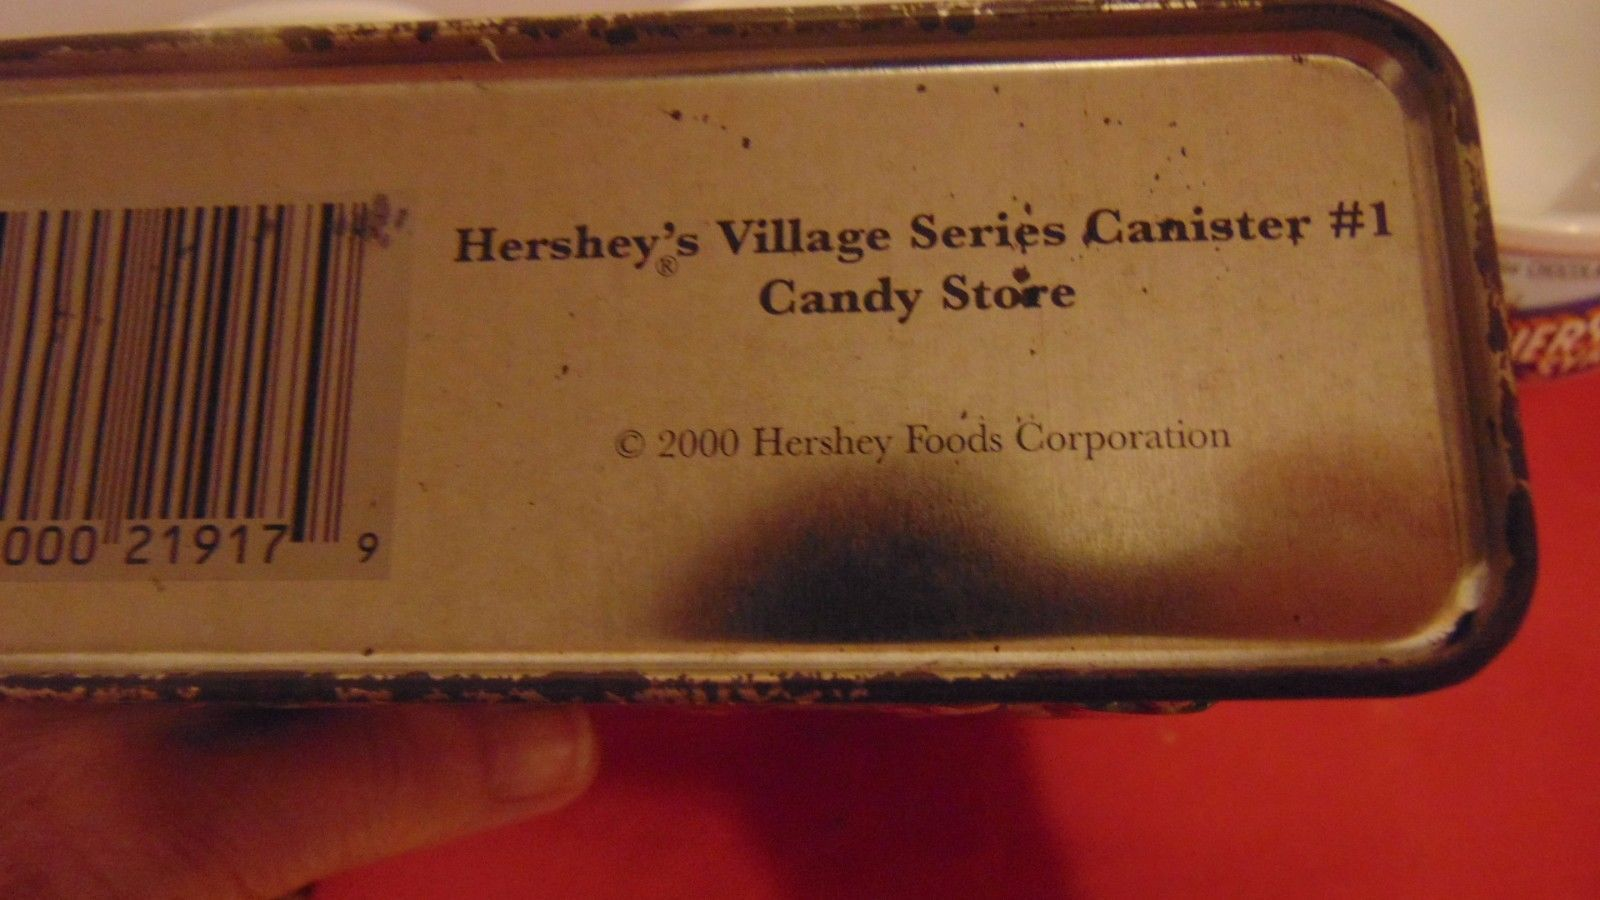 Hersheys Tins-Soup/Cereal Bowls-3 Each-Houston Harvest Gift Candy Store-Candy image 9